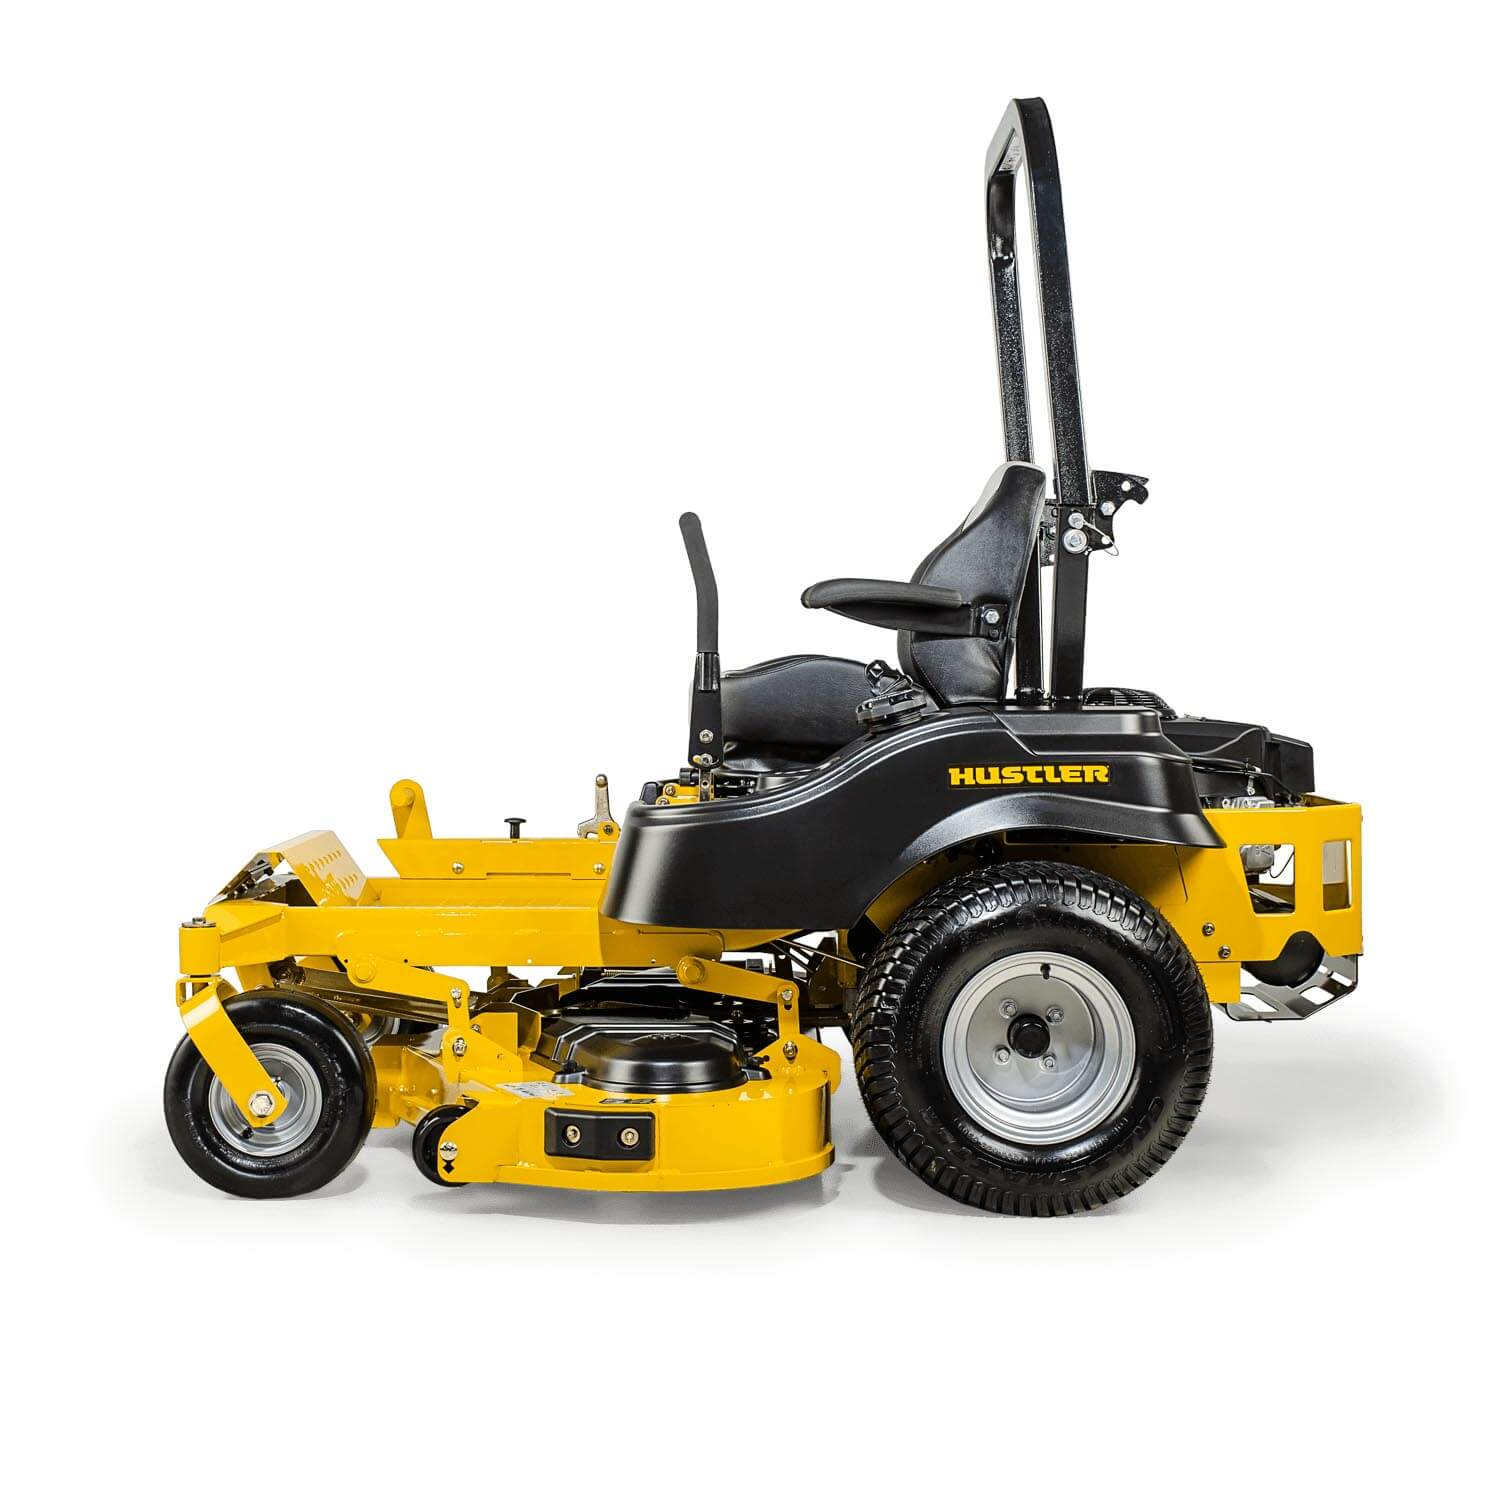 Image of the profile of a yellow riding mower showing the trim edge of the deck